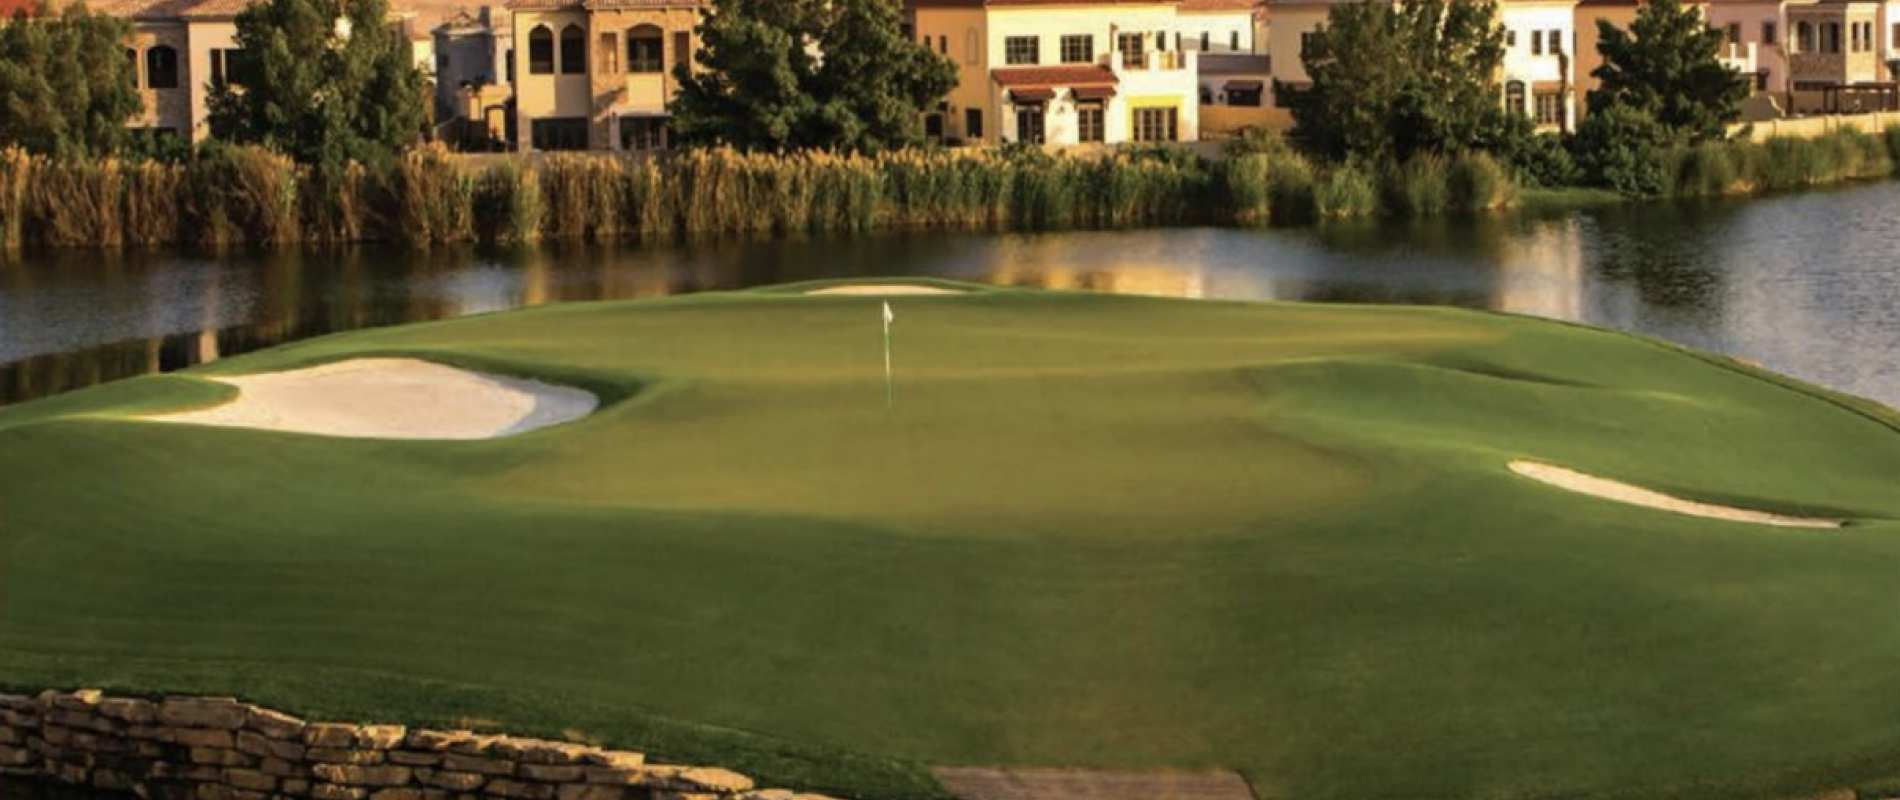 Luxury Property Dubai 3 Bedroom Villa for sale in Redwood Park Jumeirah Golf Estates